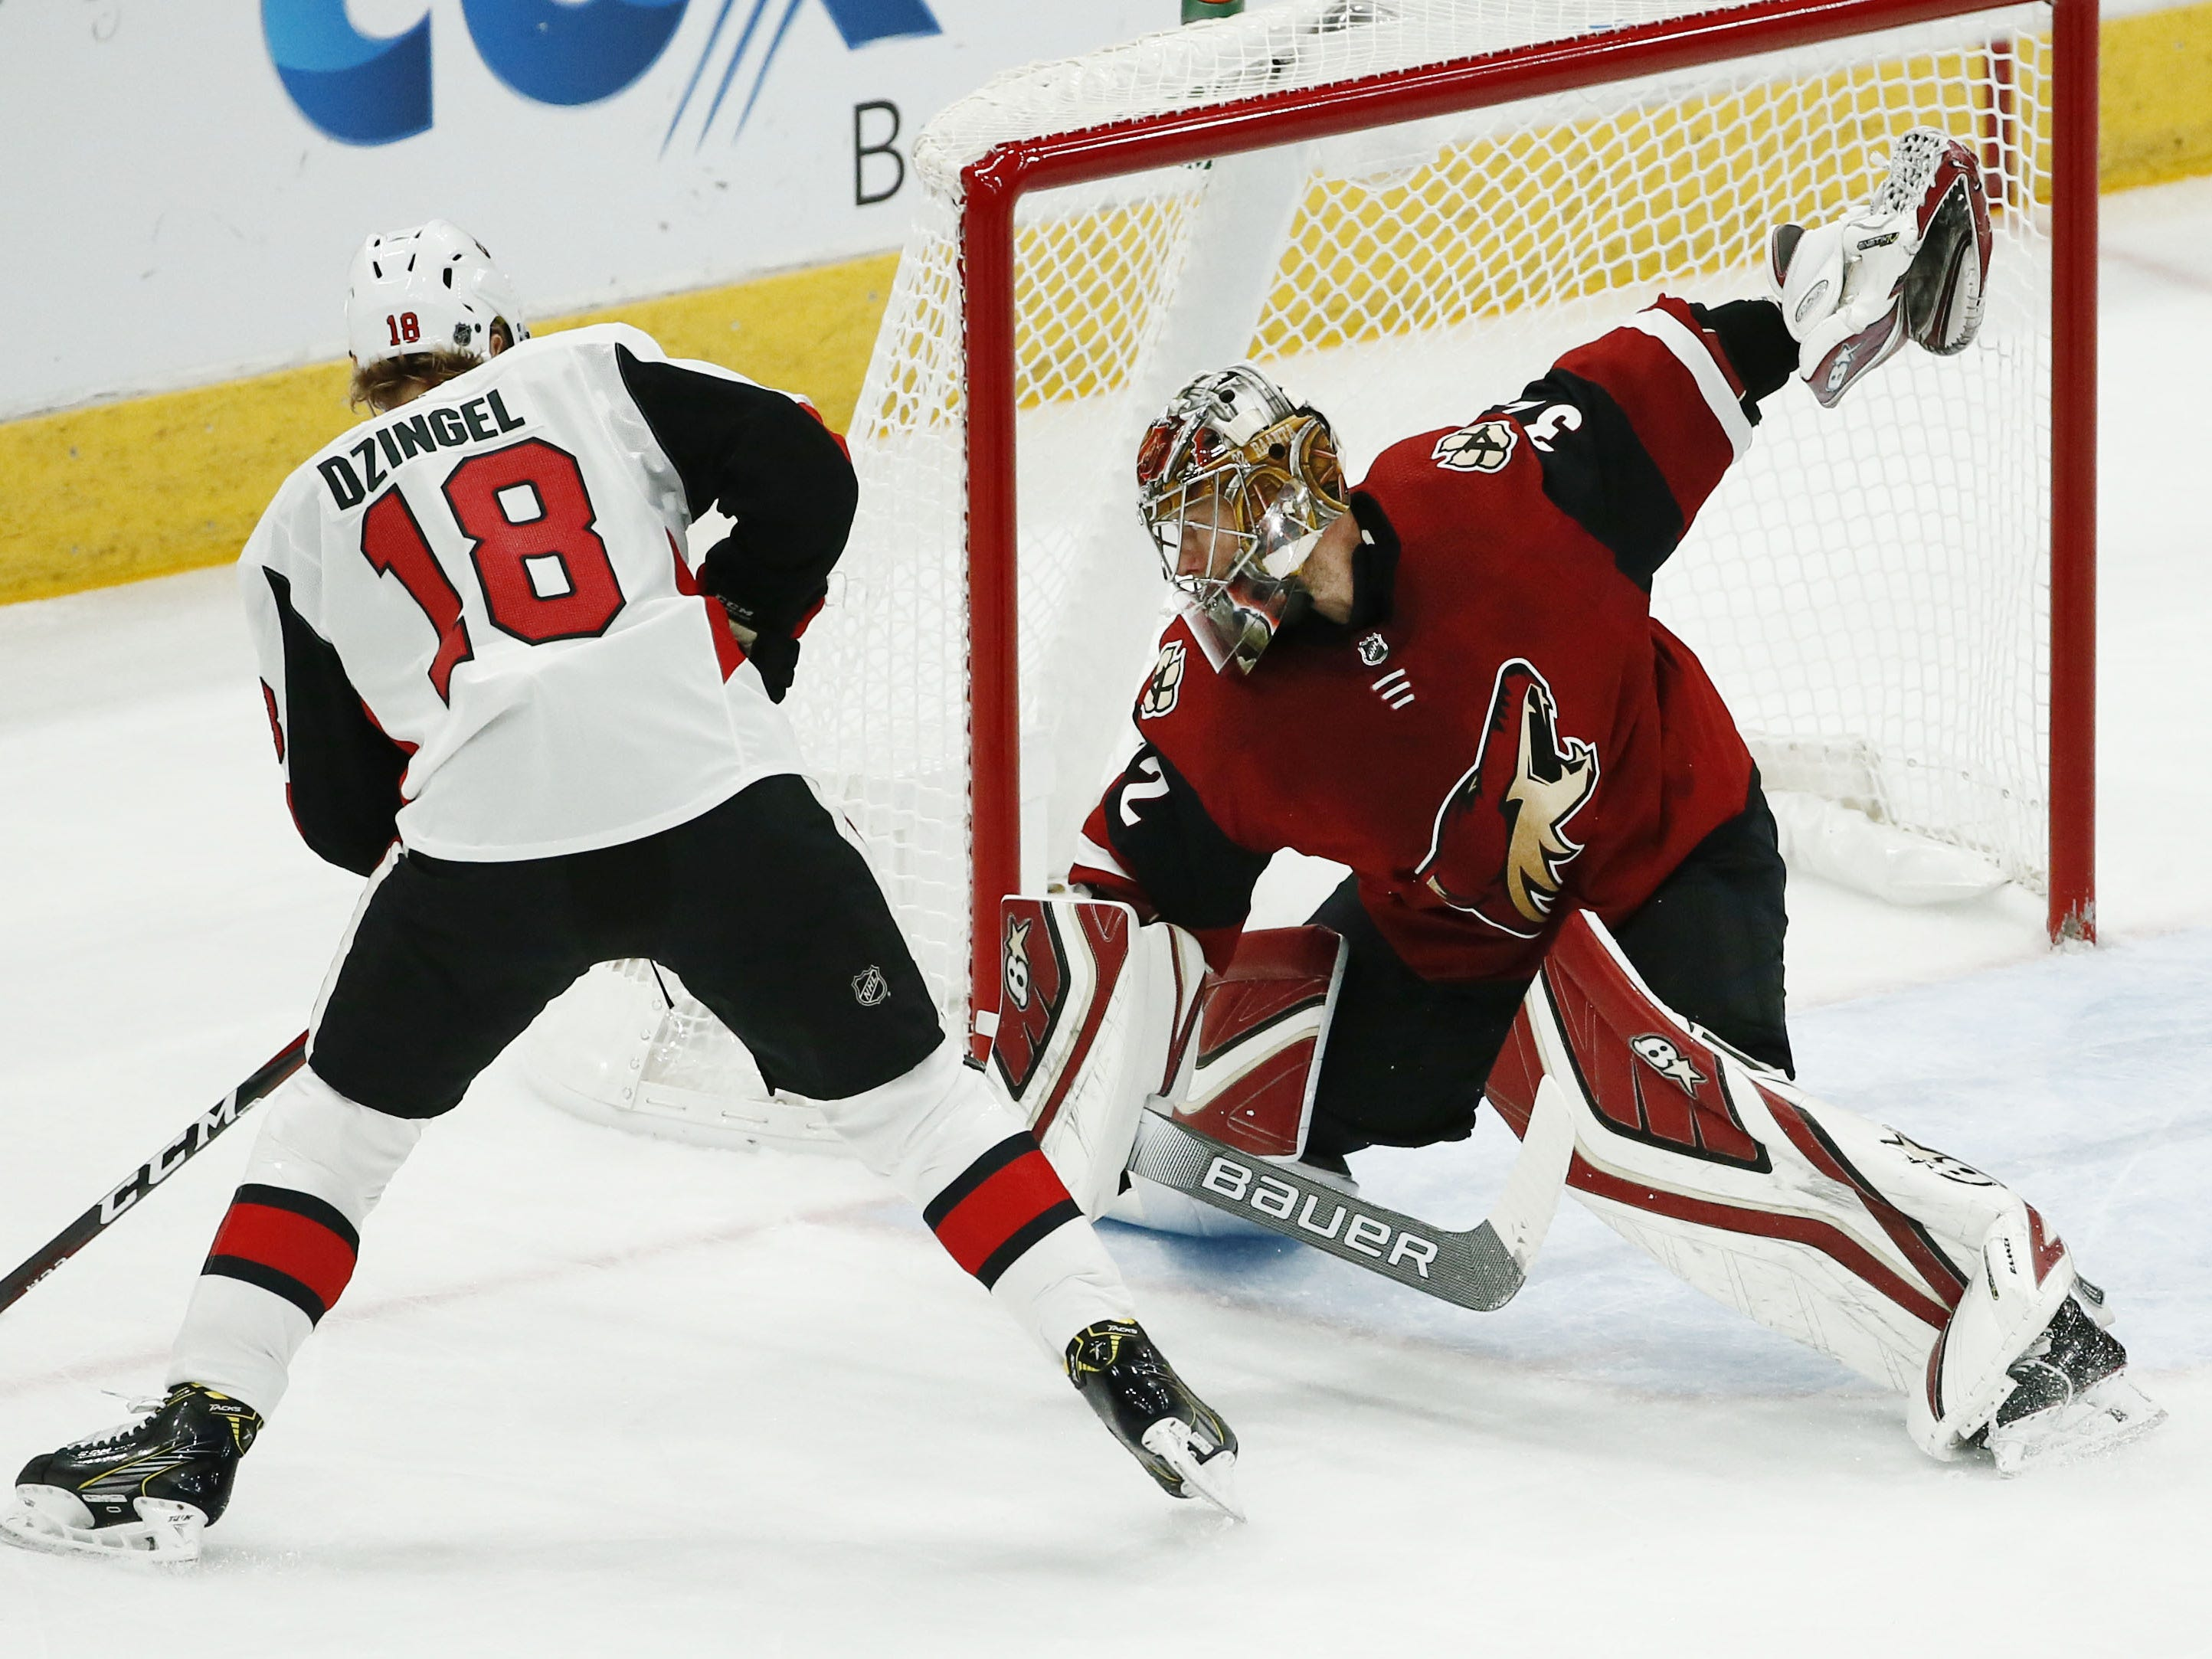 Arizona Coyotes goalie Antti Raanta blocks a shot by Ottawa Senators center Ryan Dzingel in the first period on Oct. 30, 2018 at Gila River Arena.